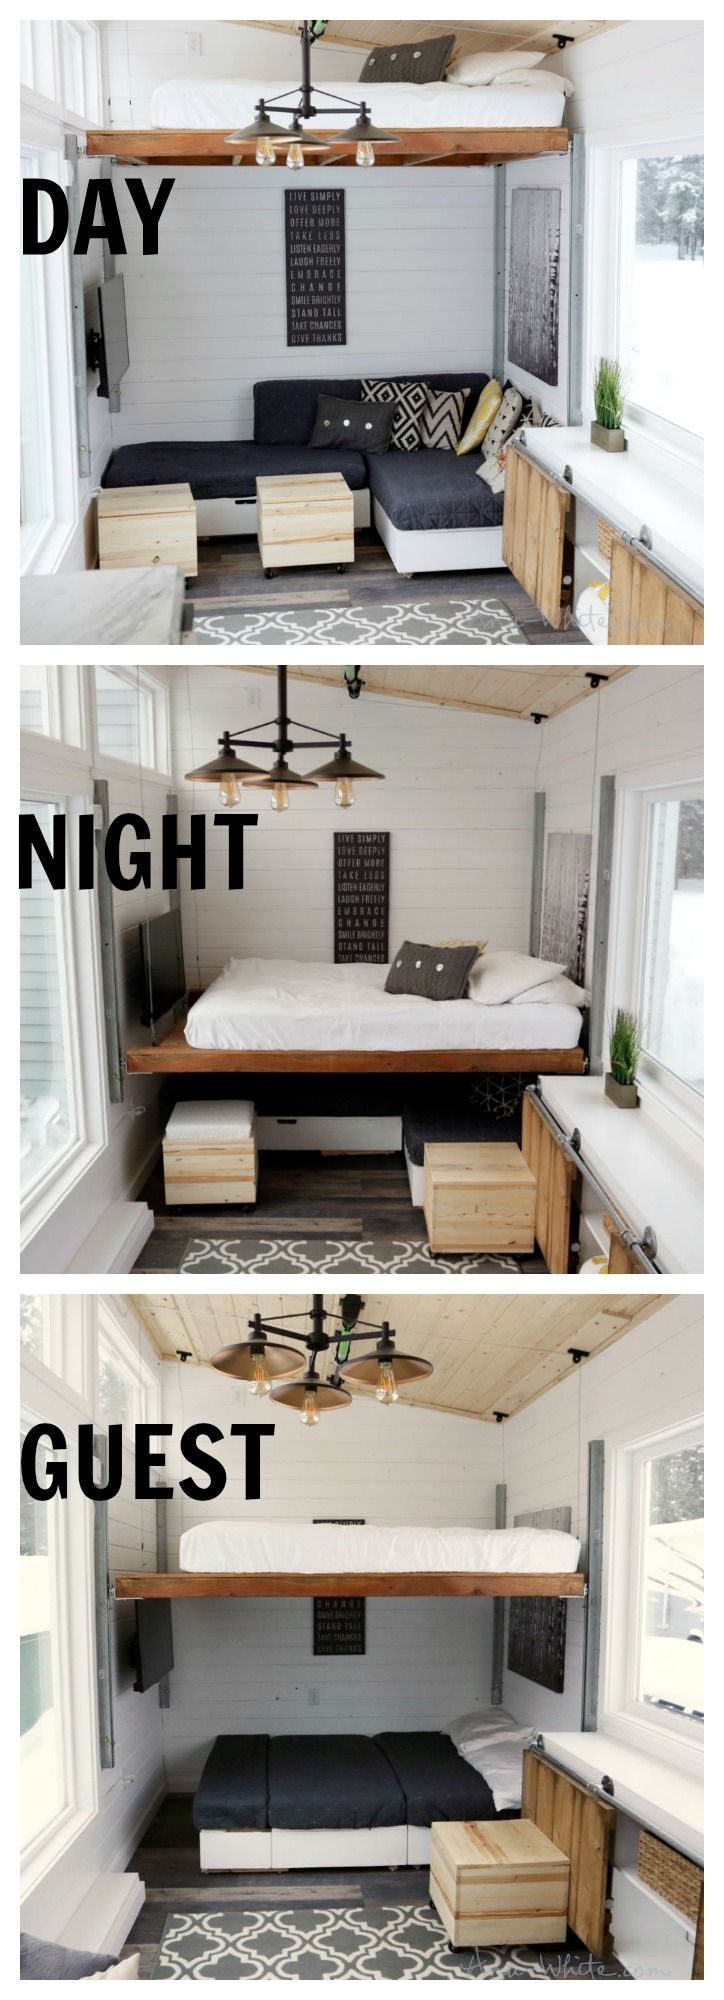 Open Concept Rustic Modern Tiny House Photo Tour and Sources   Ana White  Woodworking Projects. 25  best ideas about Tiny House Furniture on Pinterest   Tiny